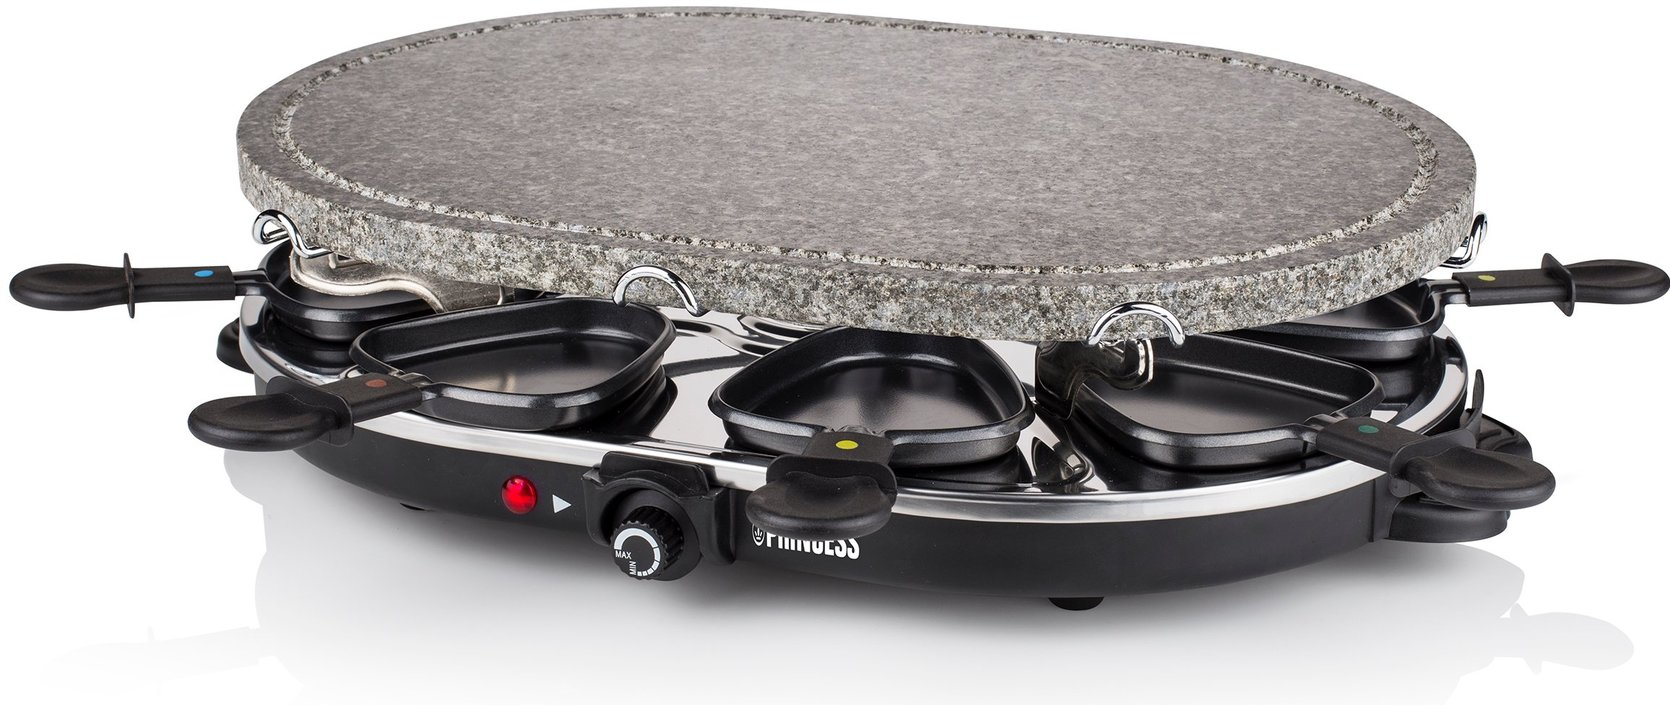 Princess Stone & Raclette Set steengrill